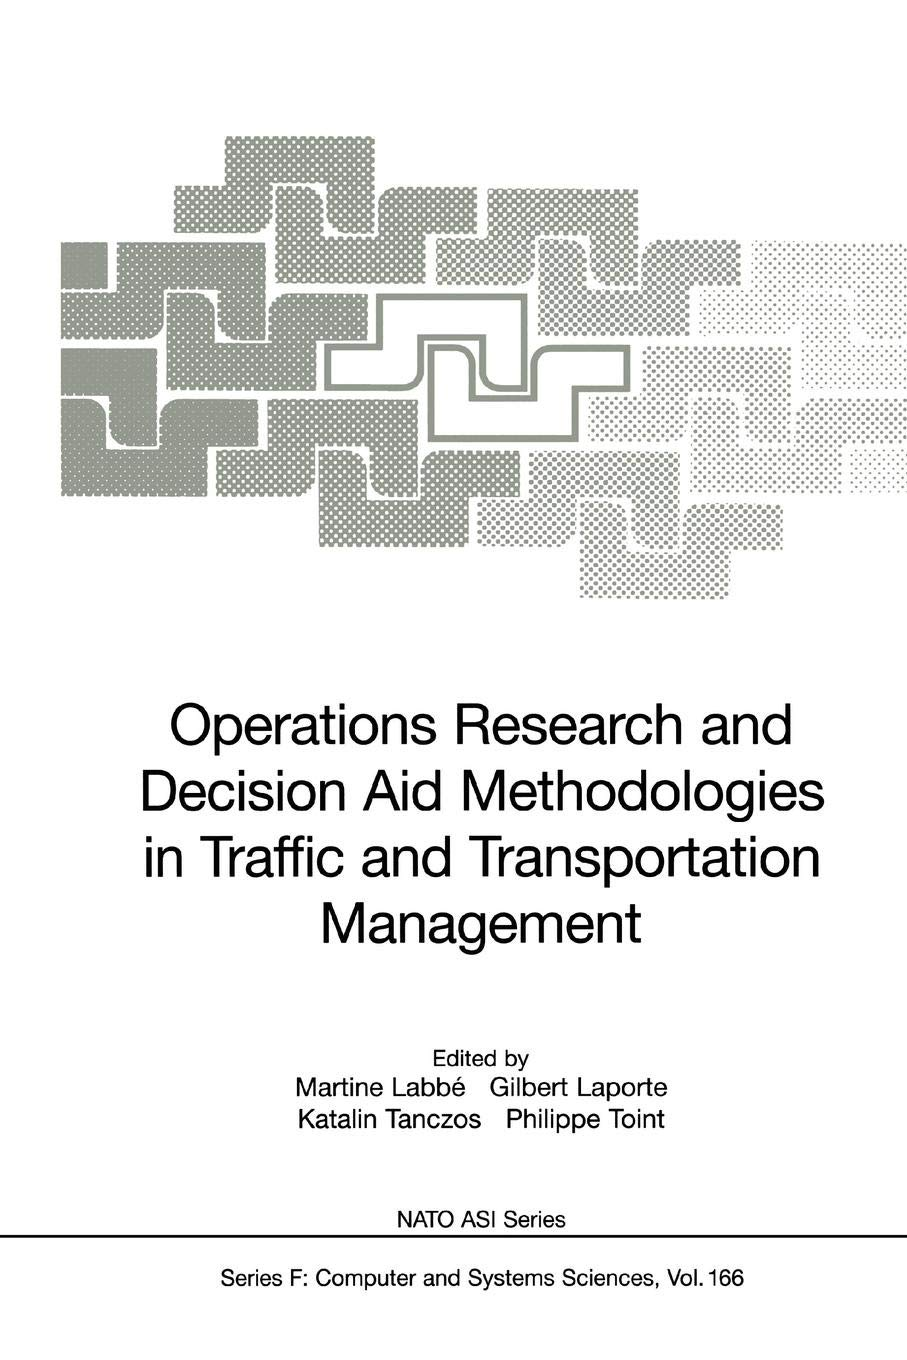 Operations Research and Decision Aid Methodologies in